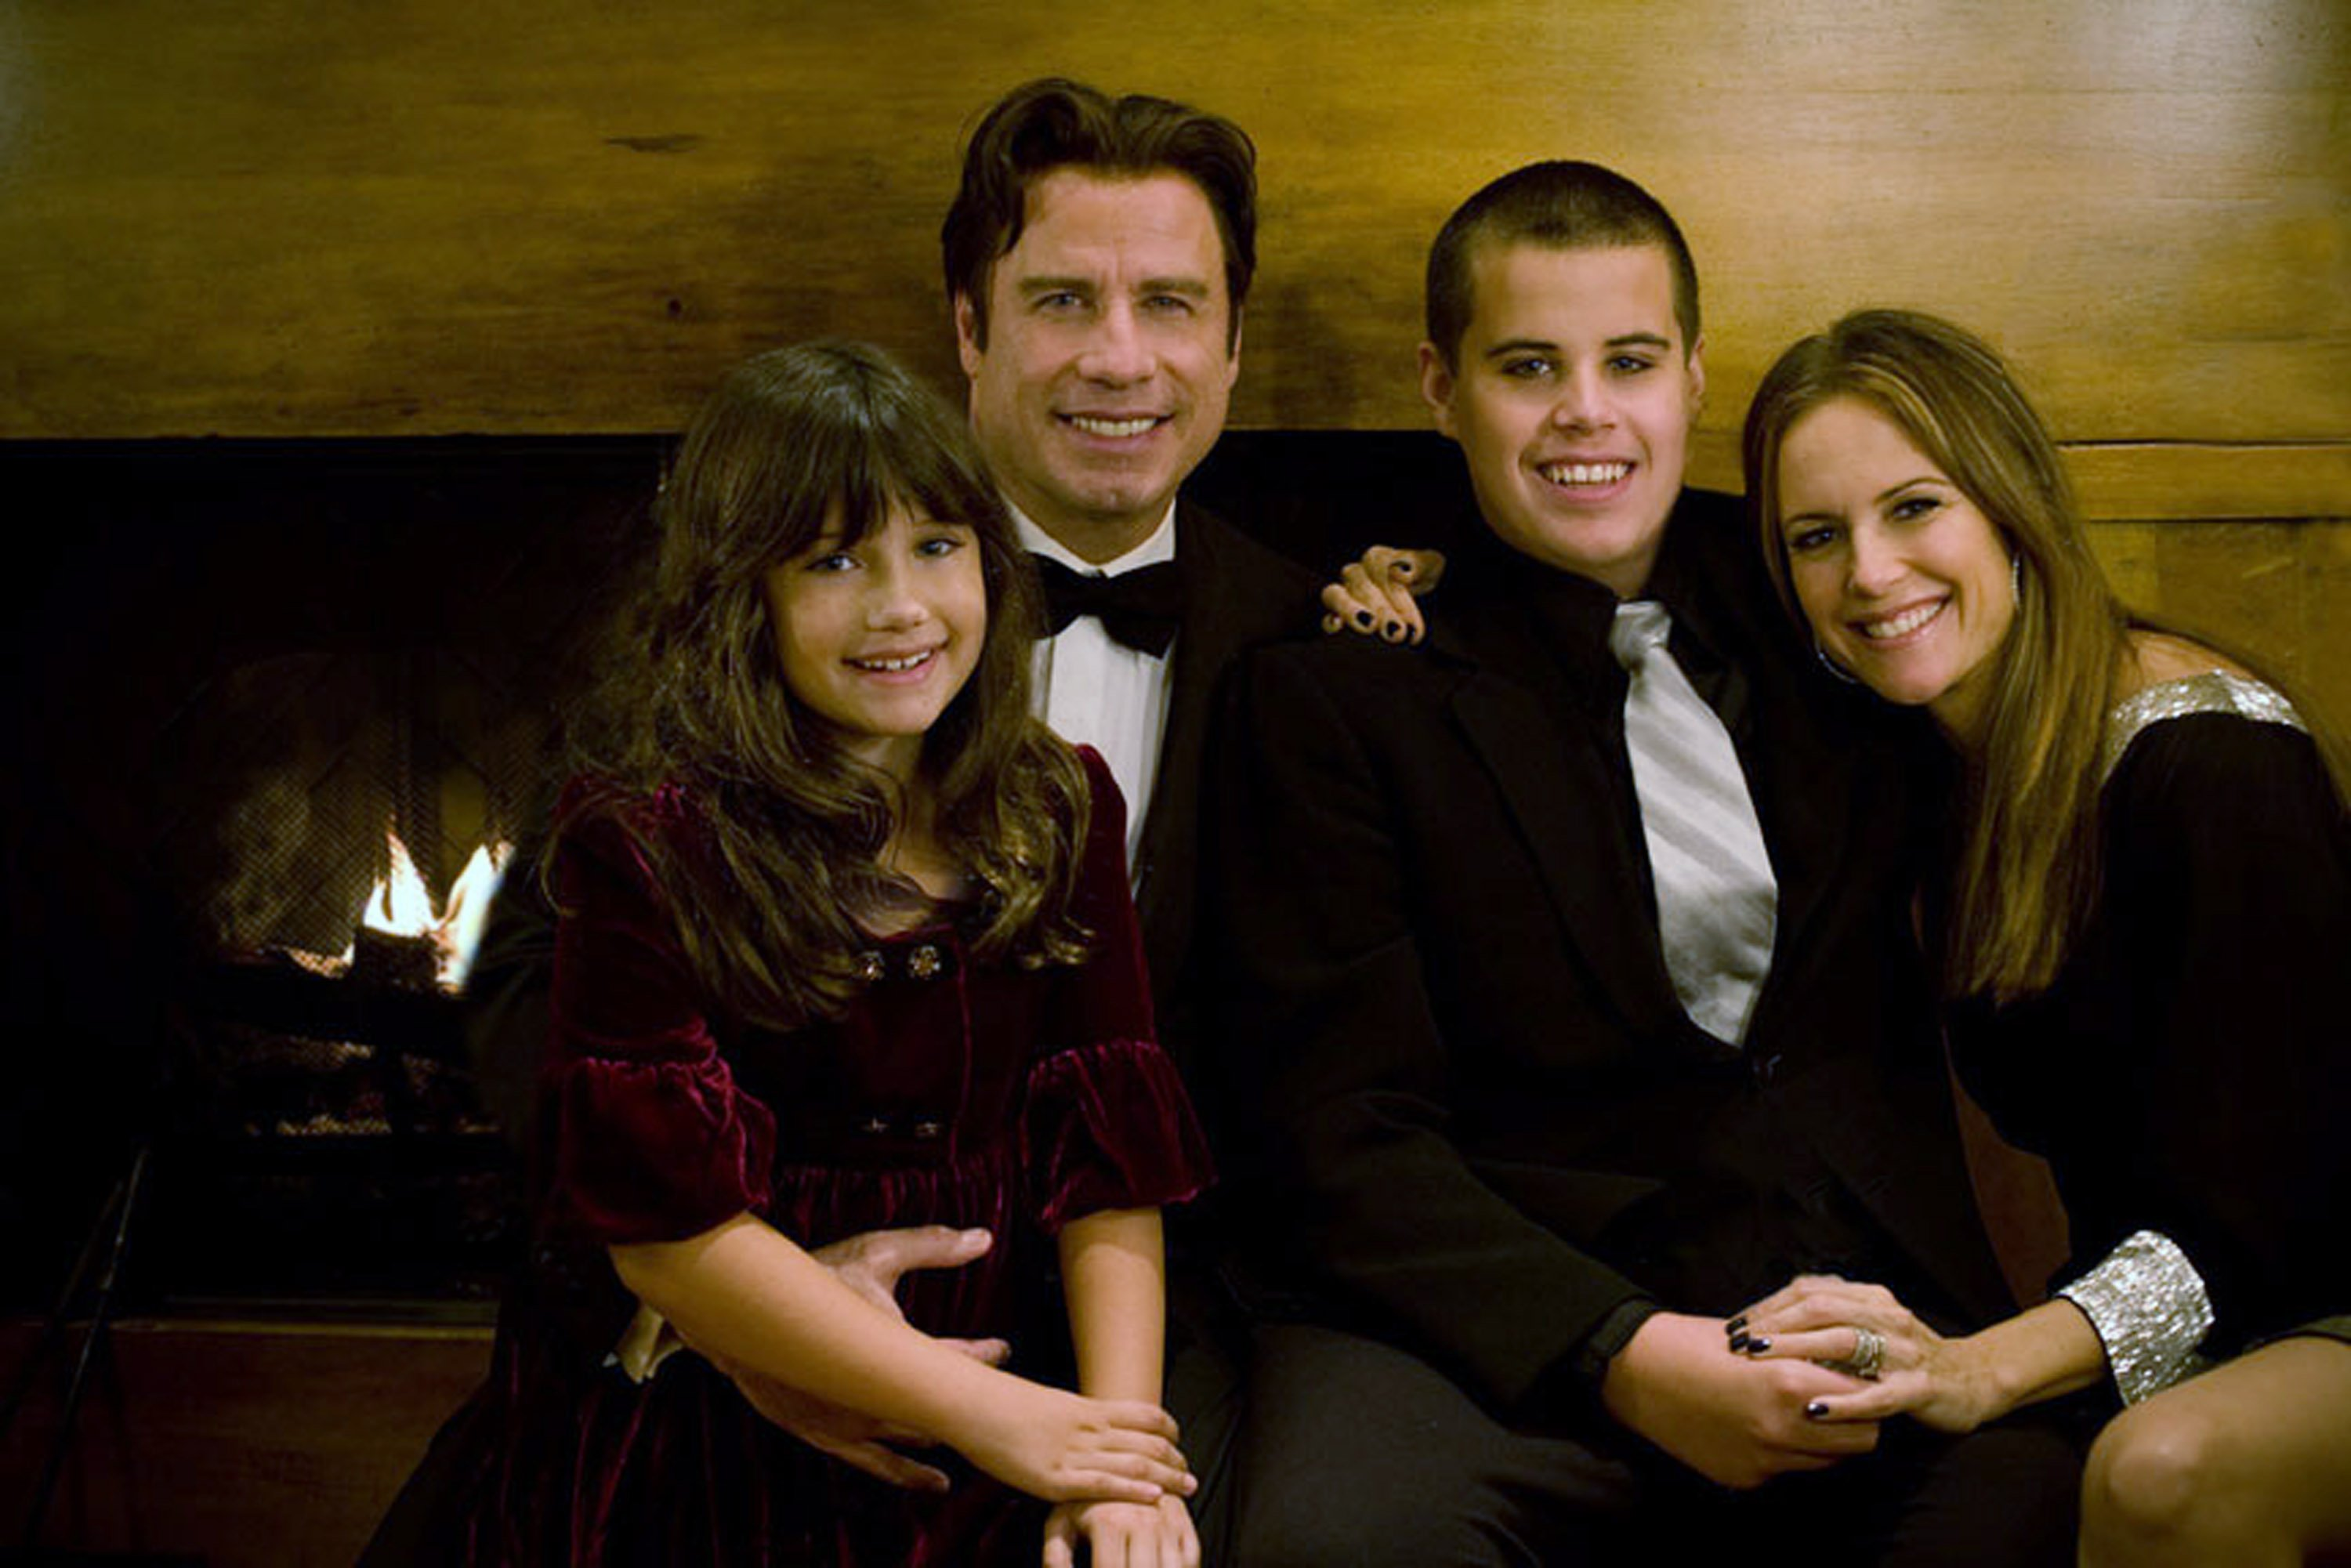 Image Source: Getty Images/Travolta family picture with John and Kelly